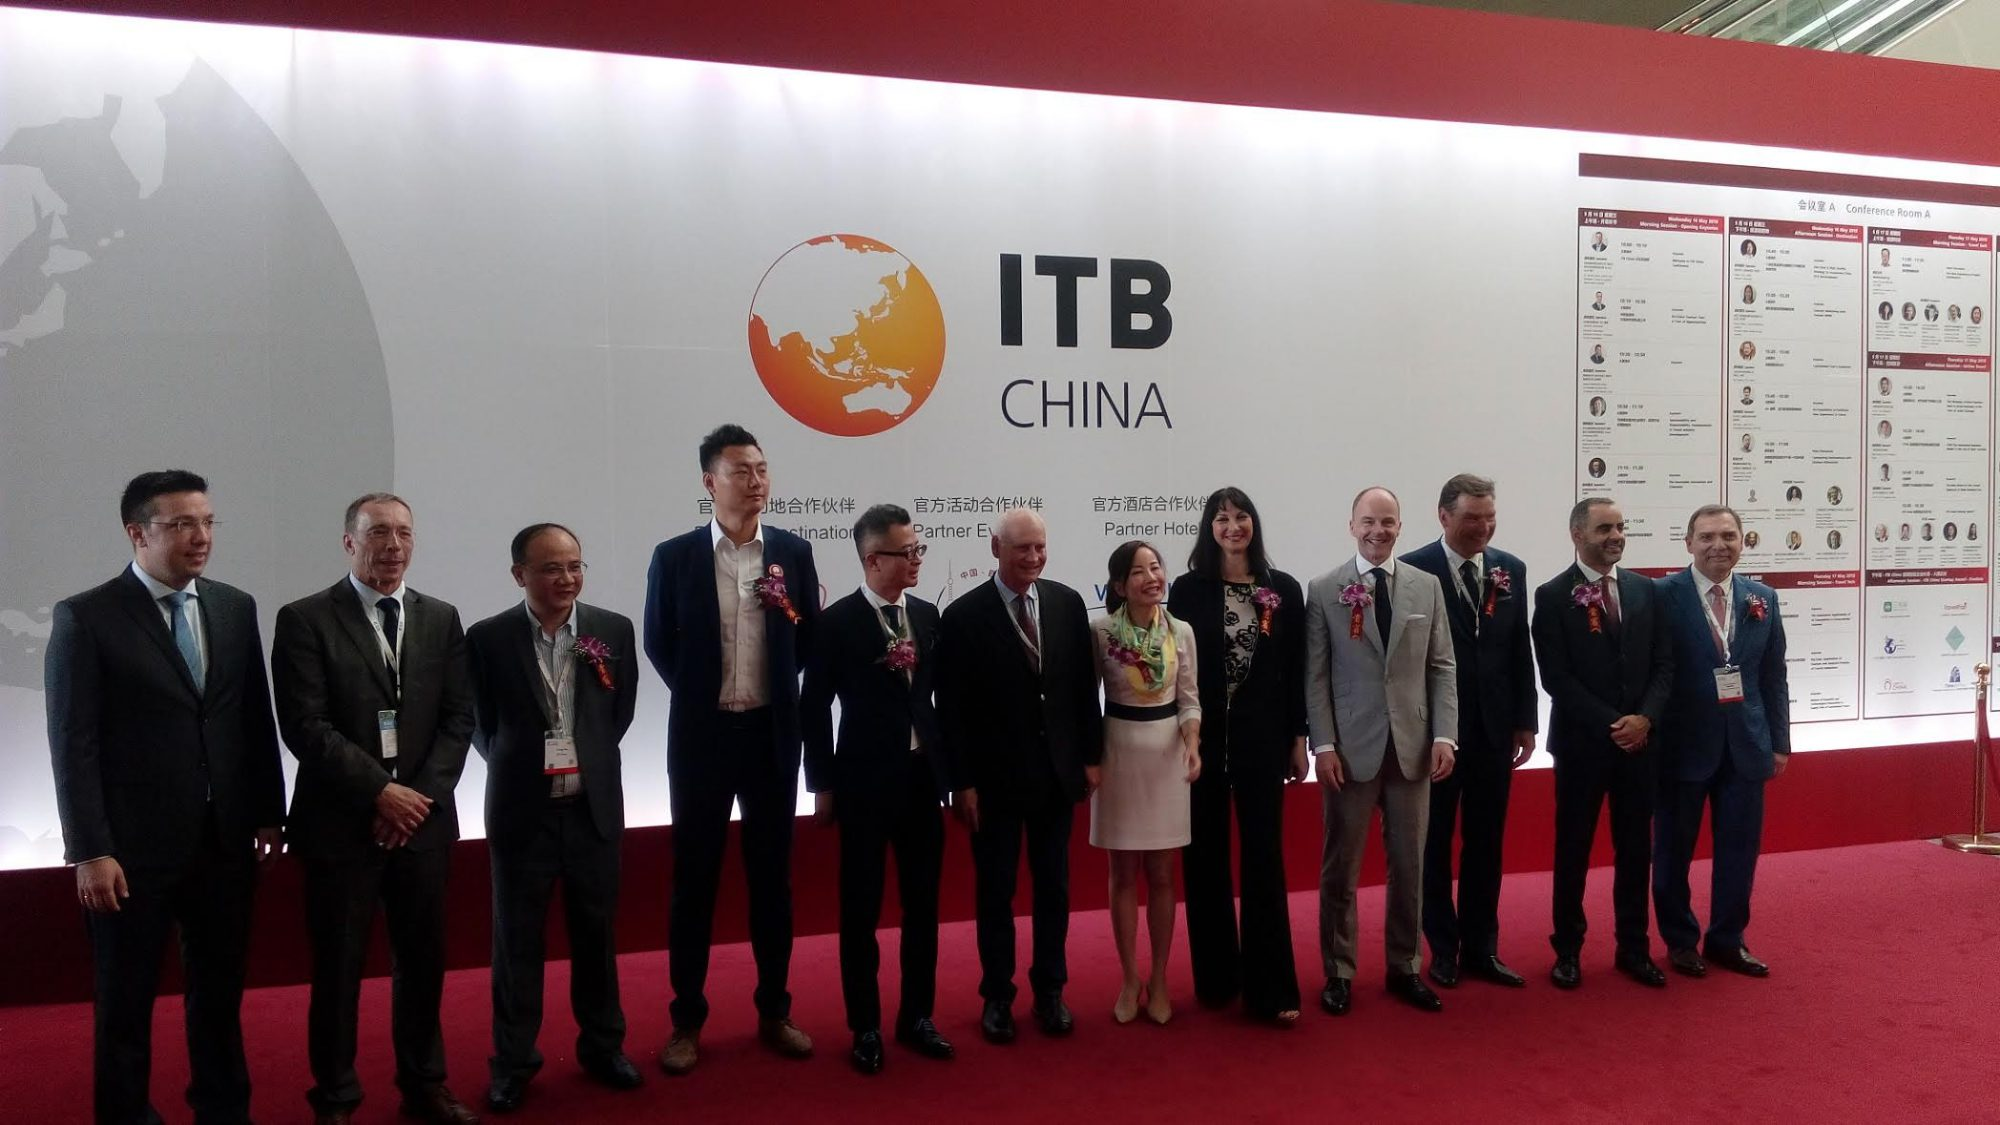 Greek Tourism minister inaugurates China's ITB leading tourism fair in Shanghai